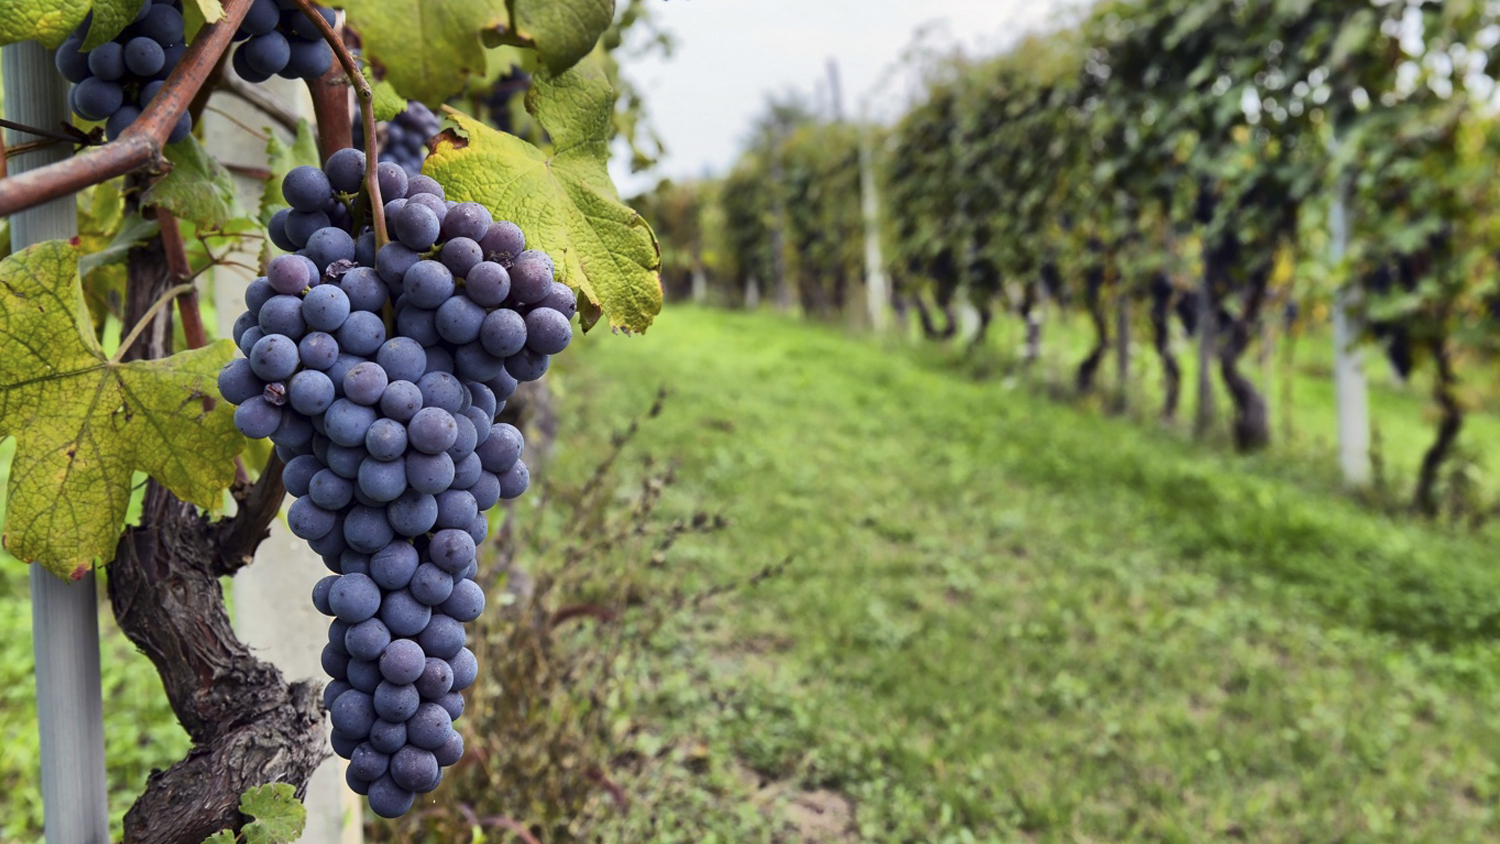 Does Your Vineyard or Winery Qualify for R&D Tax Credits?